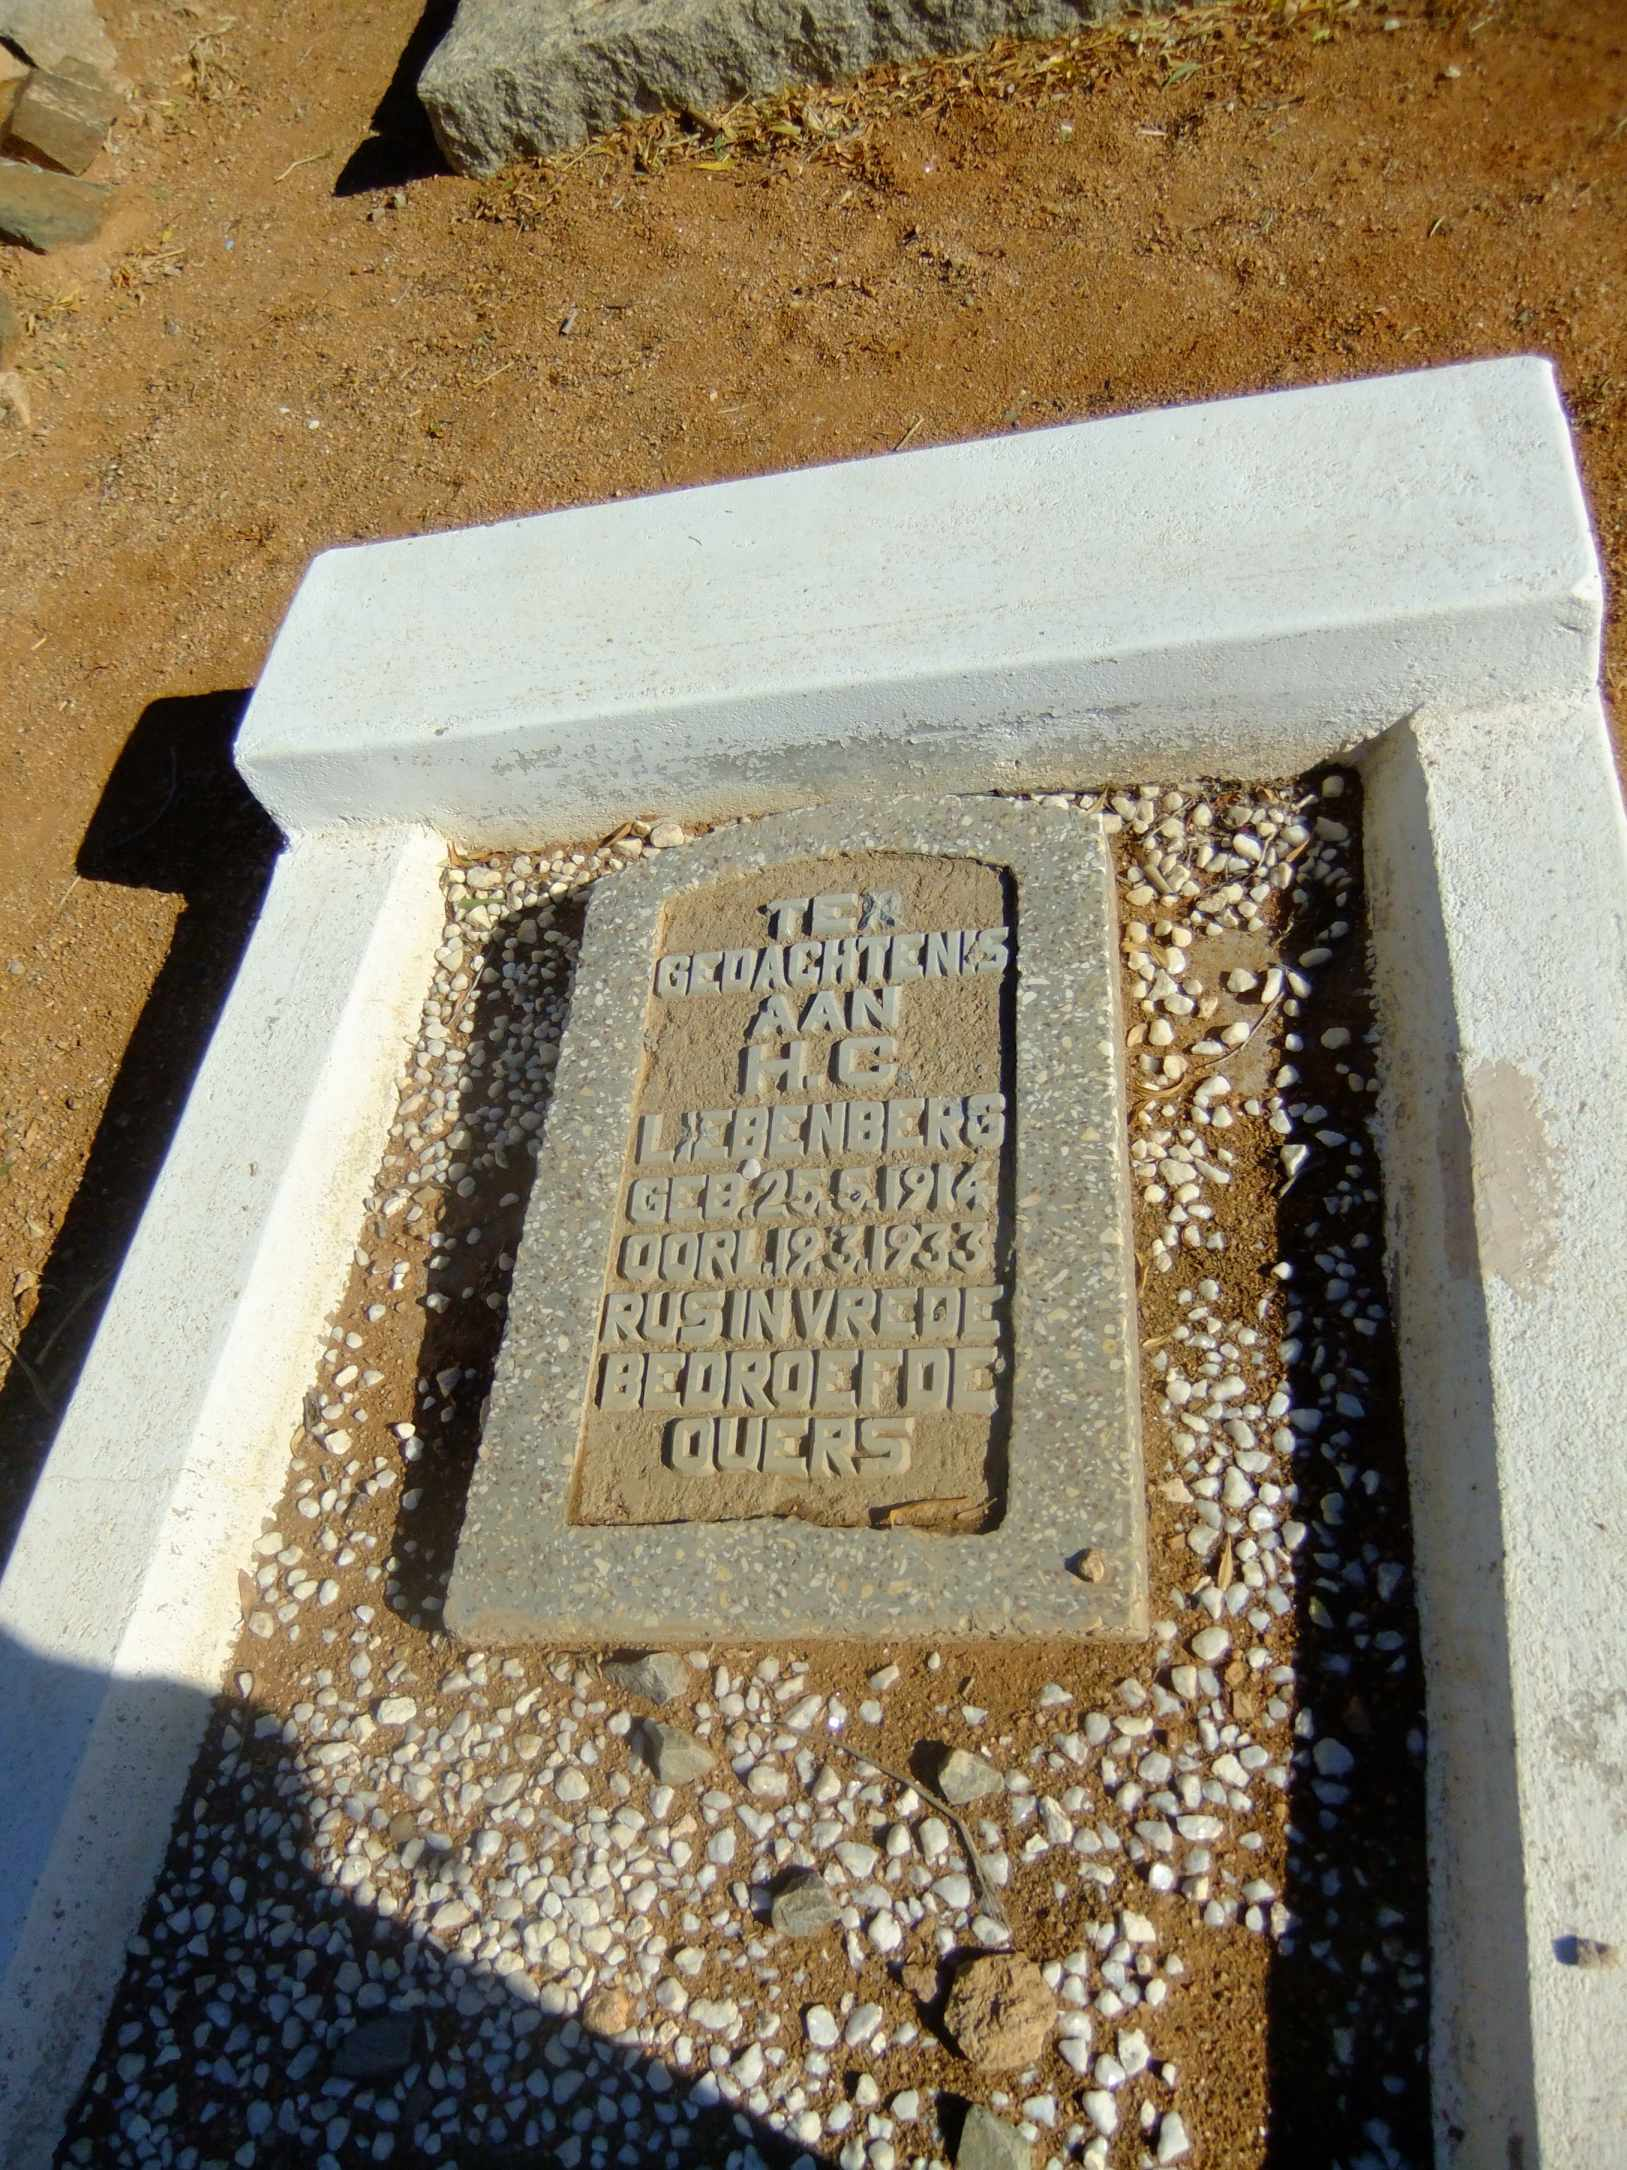 Liebenberg, HC born 25 August 1914 died 12 March 1933